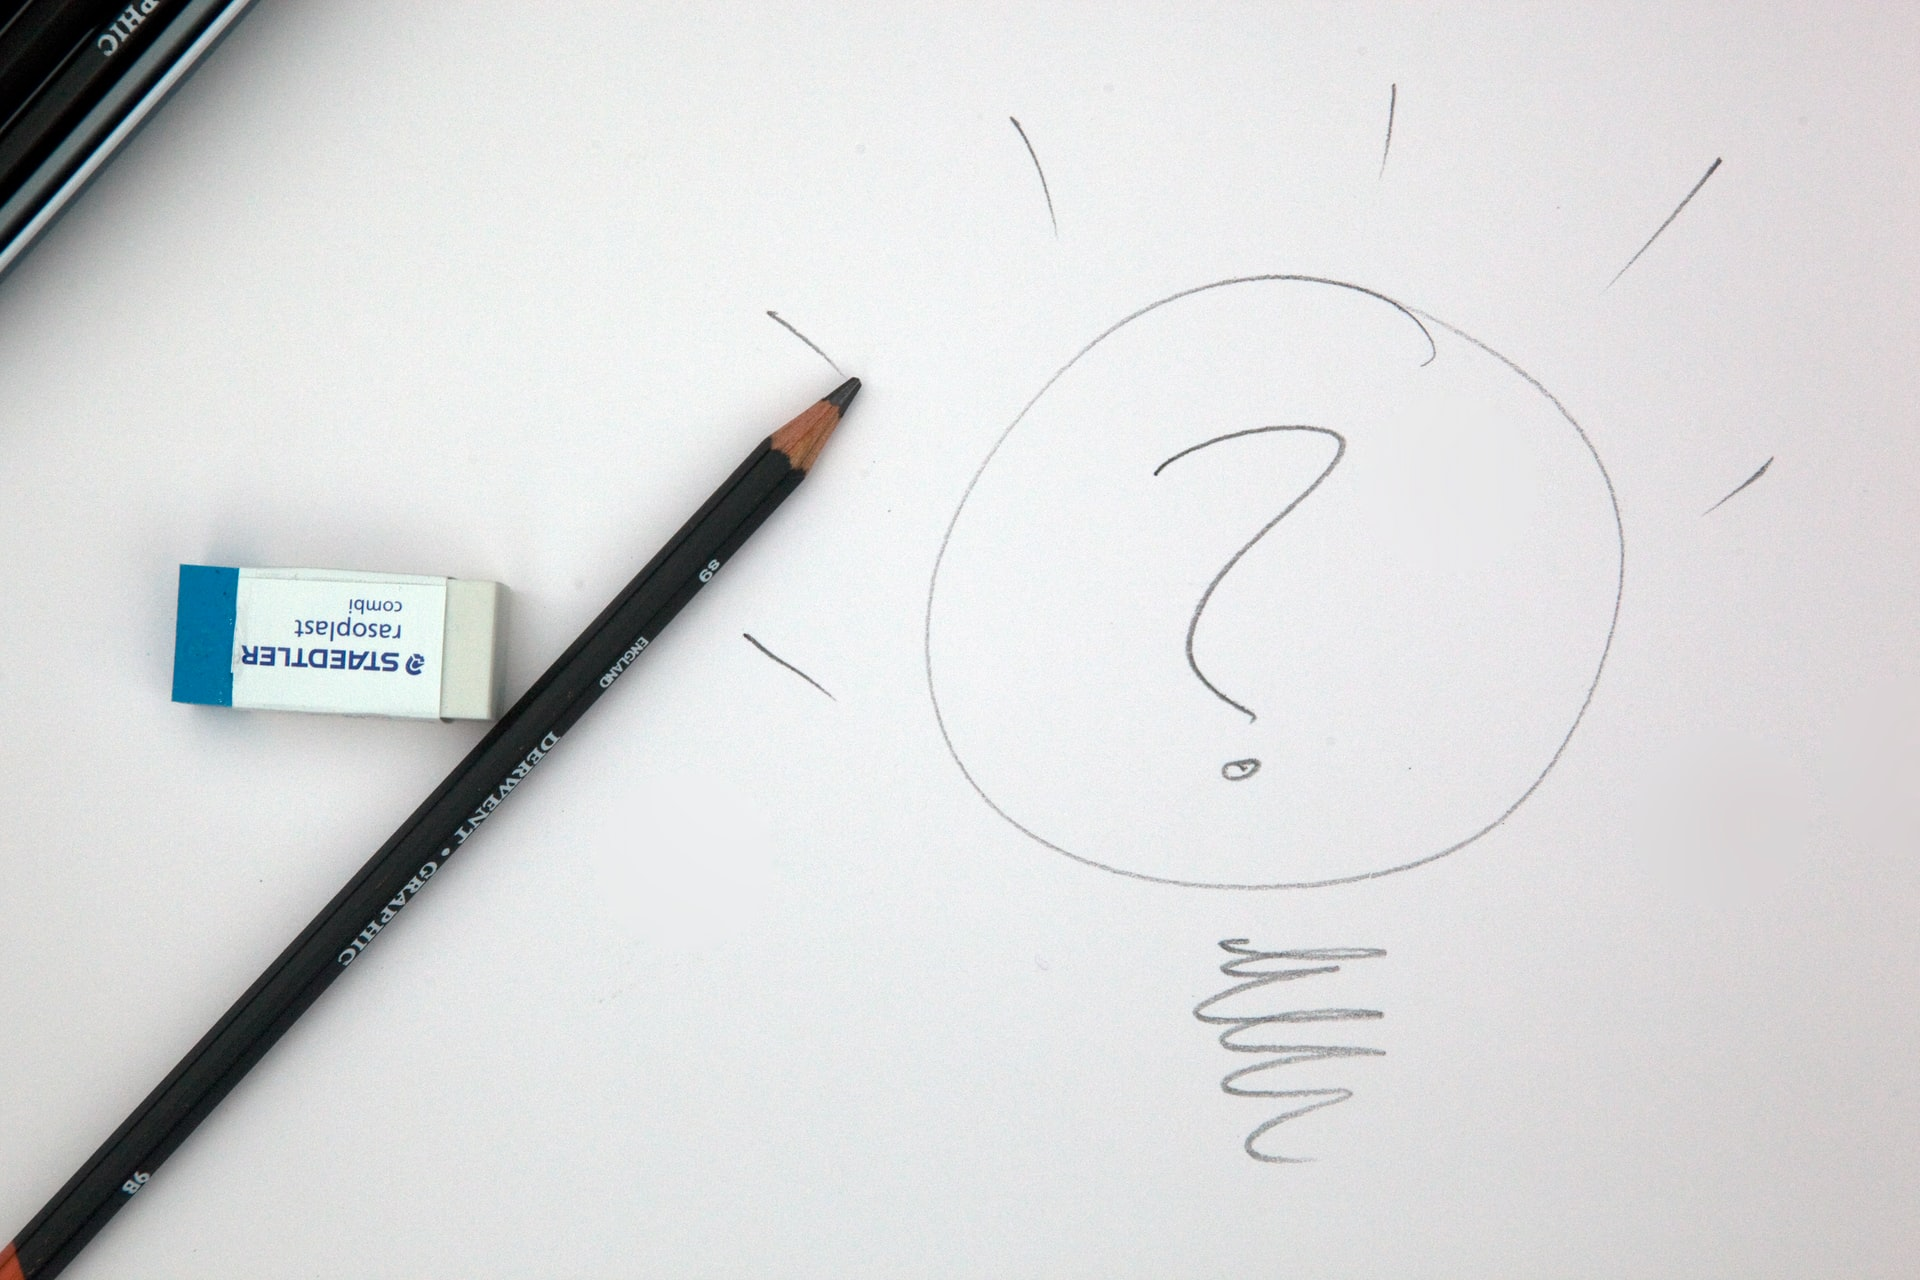 Content Strategy - pencil drawn question mark on paper